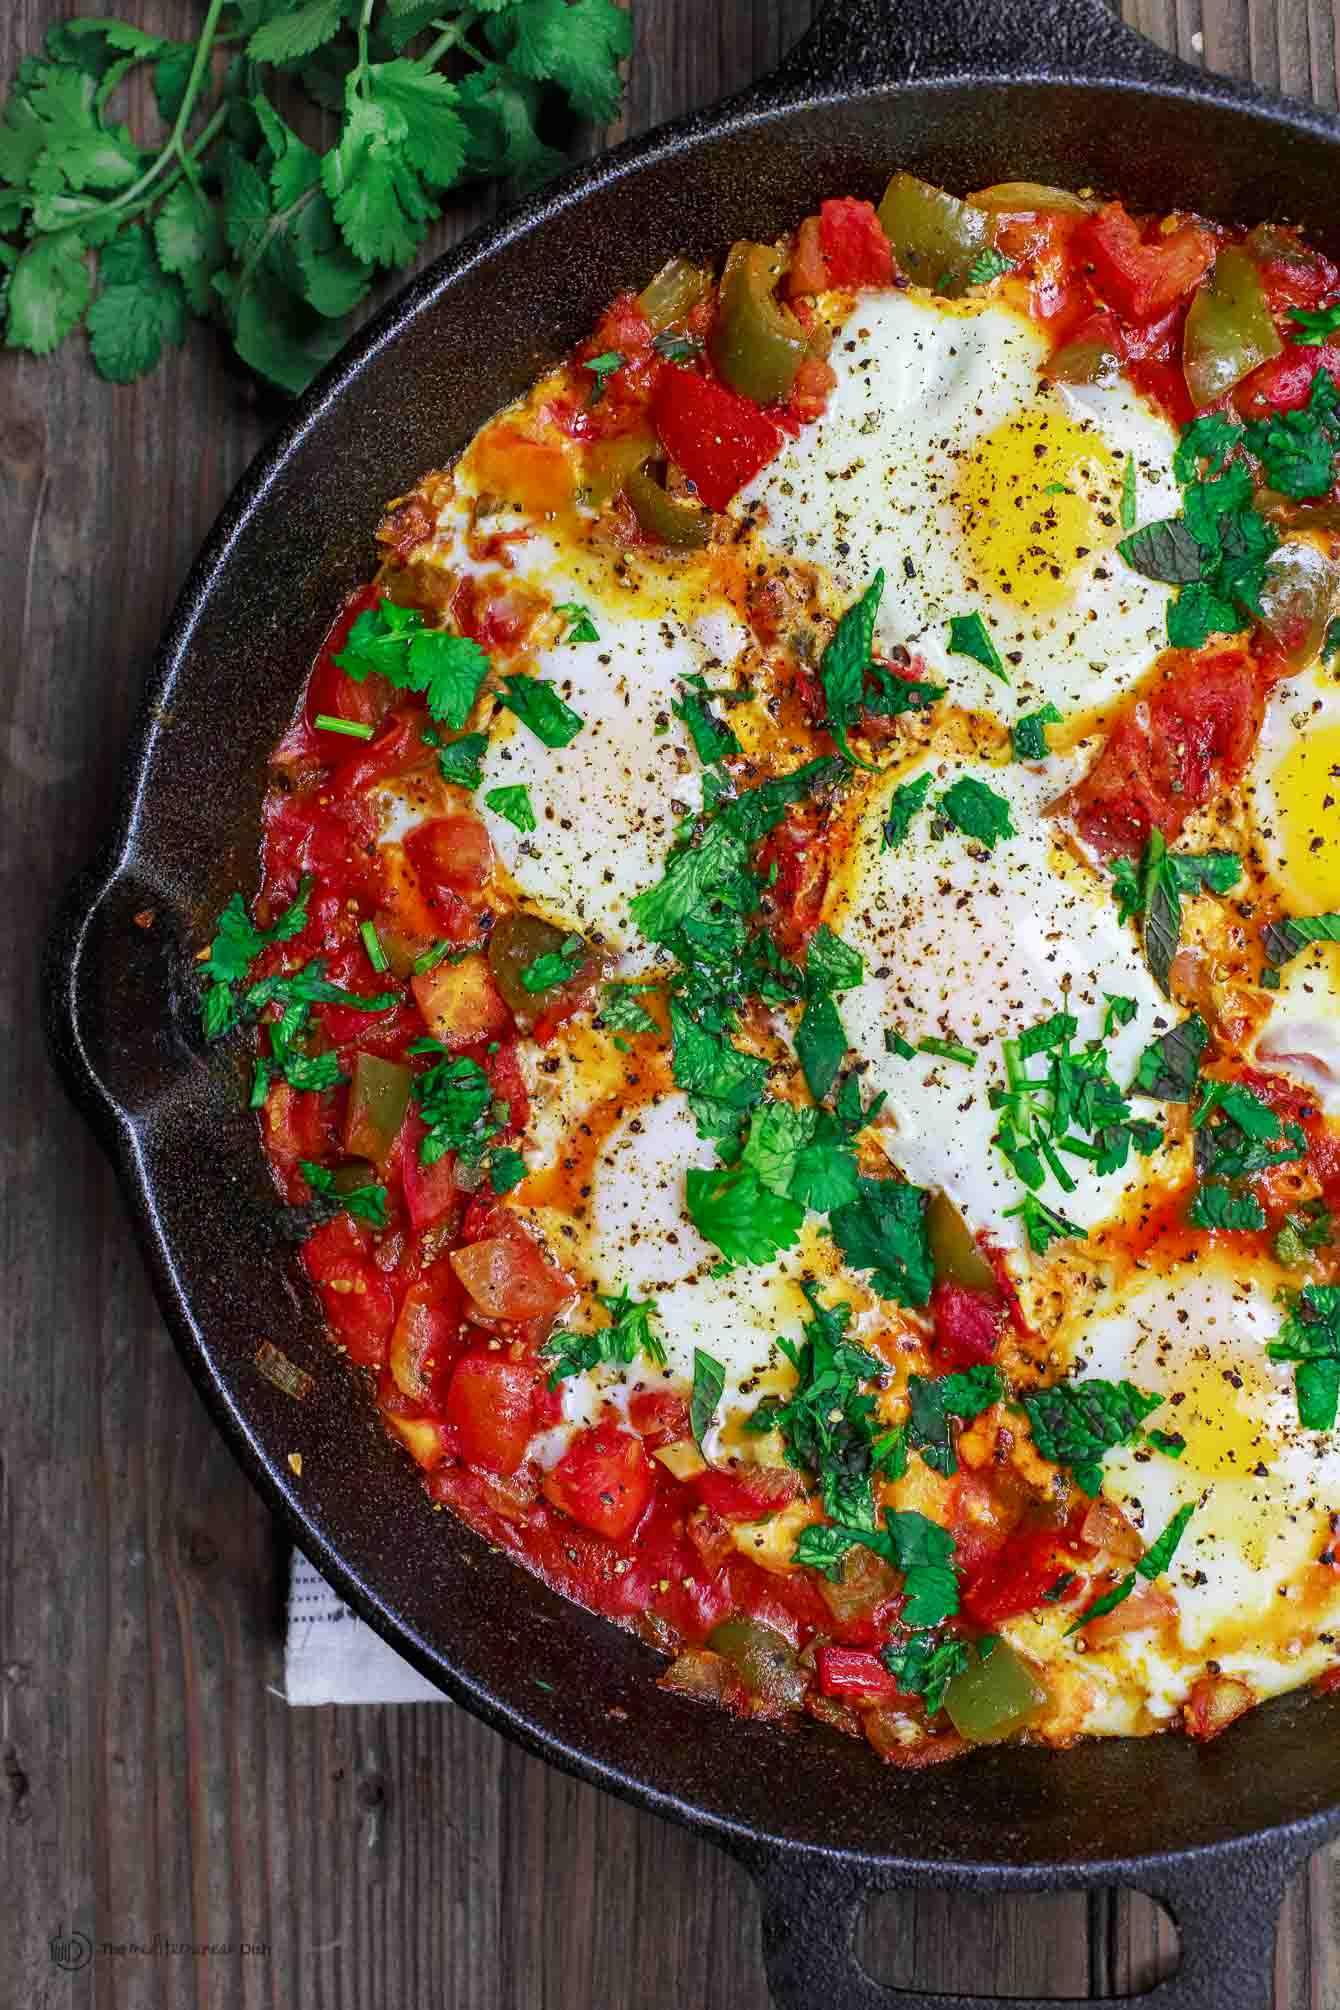 Christmas Brunch Recipes.21 Christmas Brunch Recipes With A Mediterranean Twist The